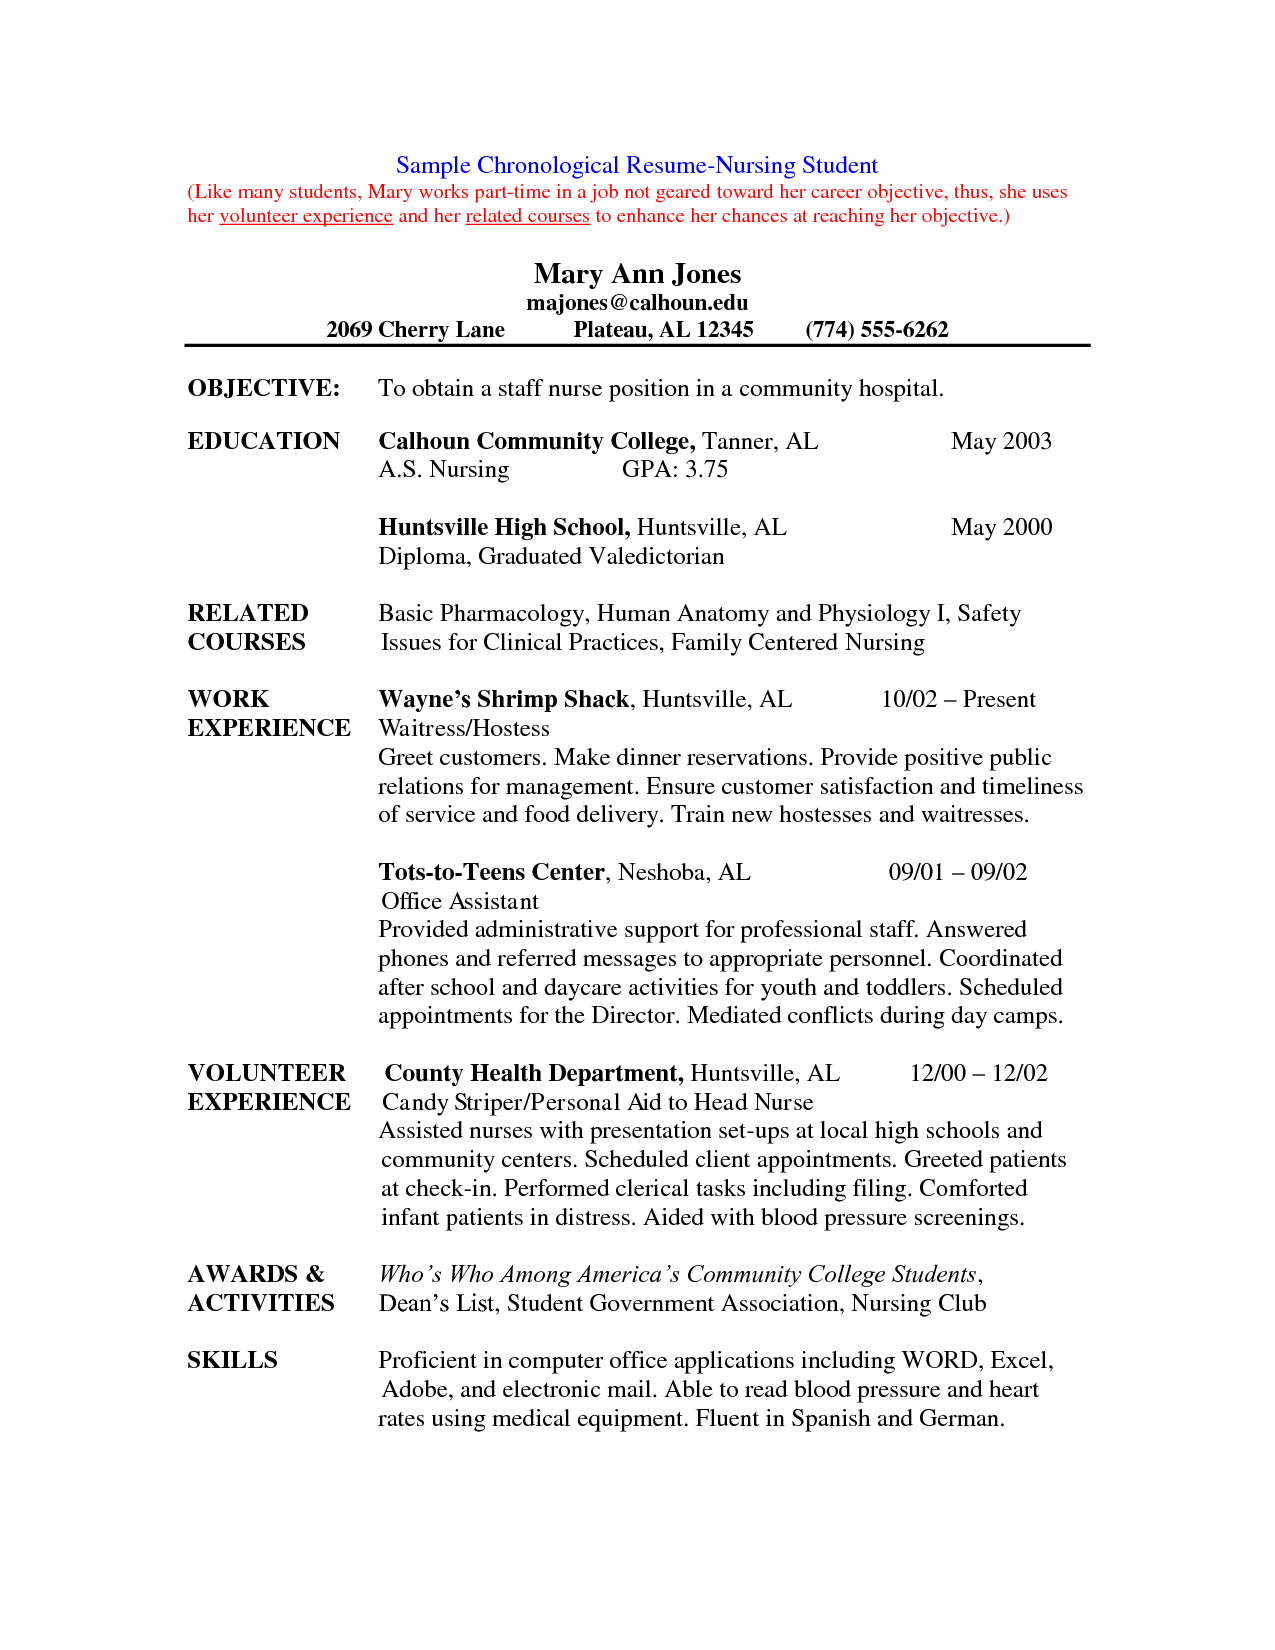 Cover Letters For Nursing Job Application Pdf | Nursing | Pinterest ...